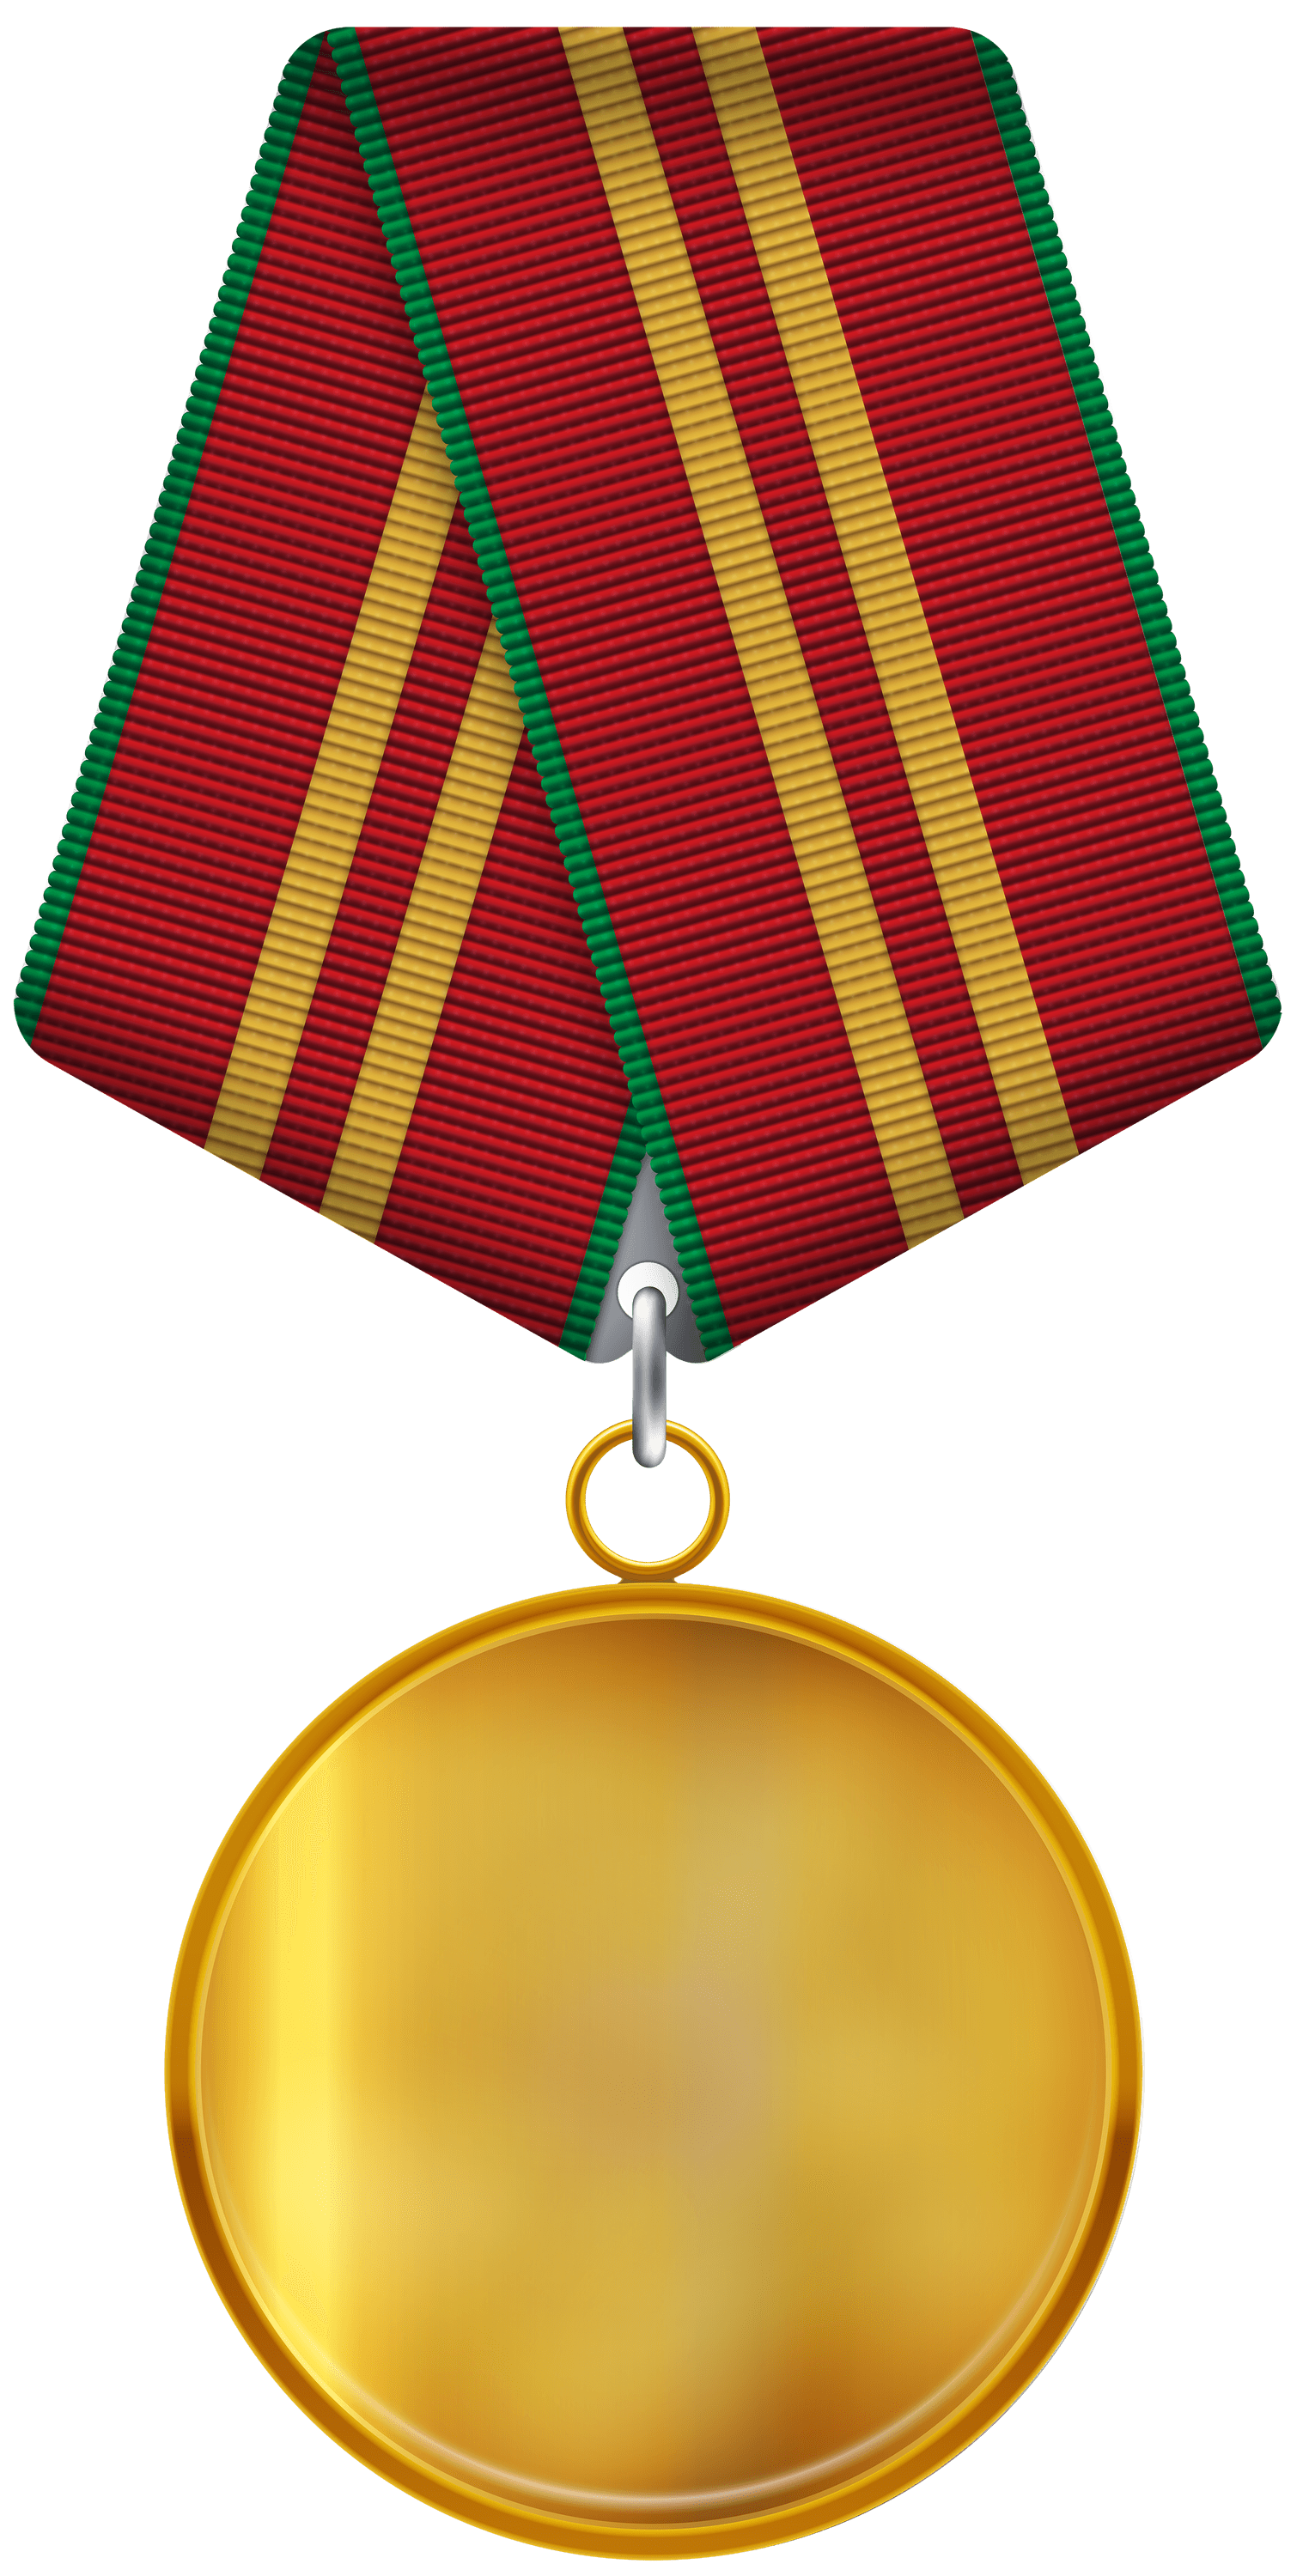 Blank medal png. Gold ribbon transparent stickpng